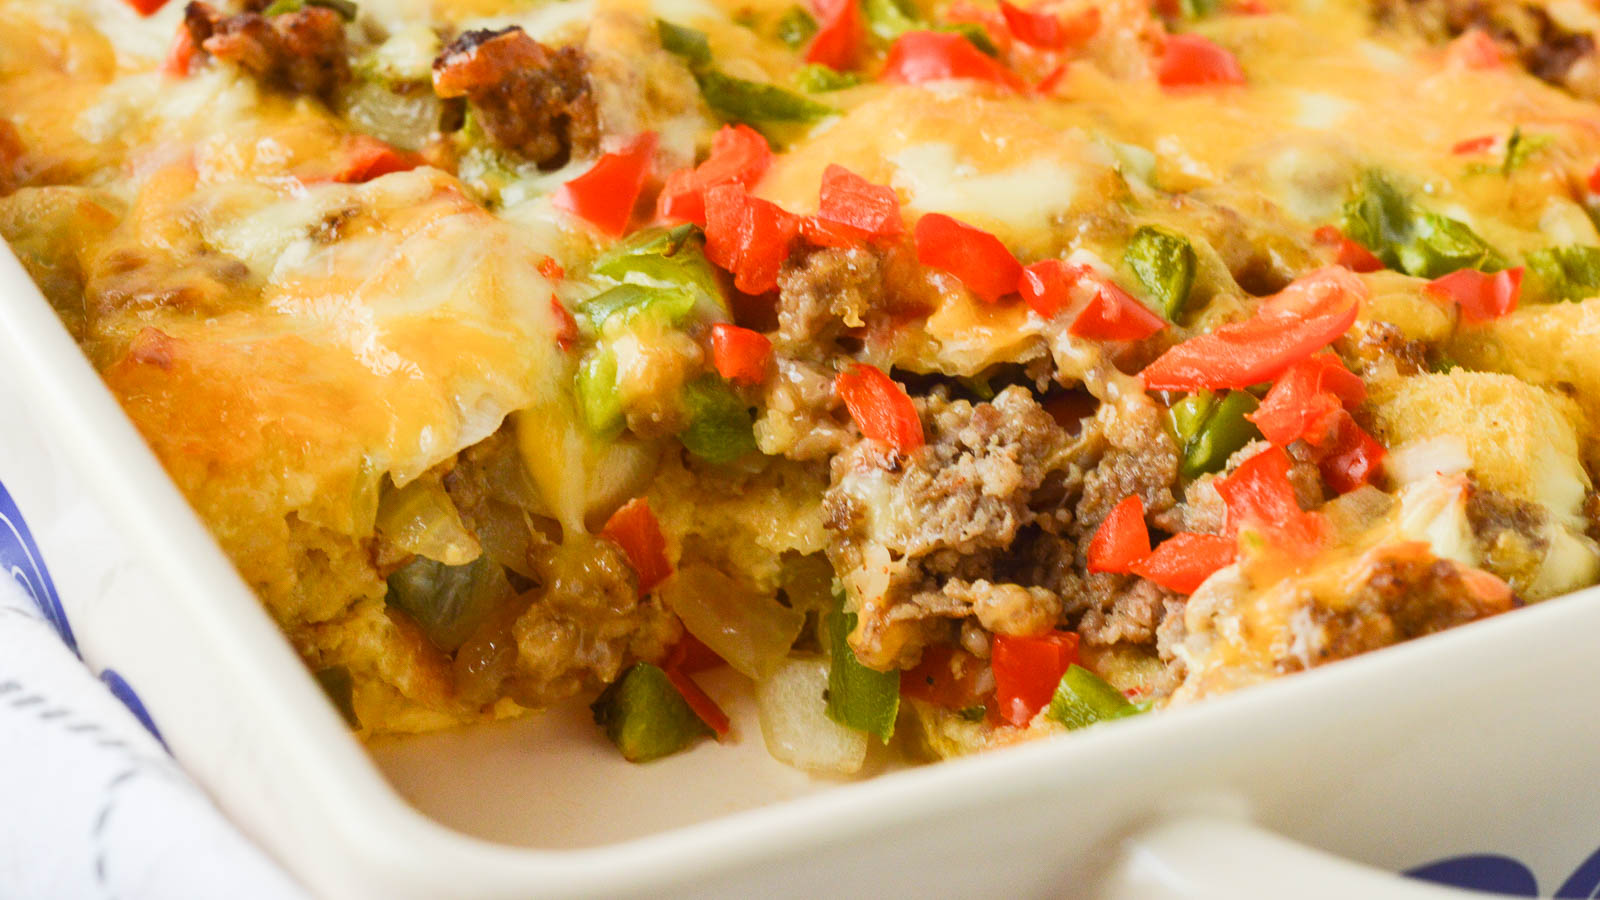 A close up image of a sausage strata, sliced, so that you can see the crumbled, cooked sausage, onions, peppers, and cheese spilling out into the empty space of the casserole dish